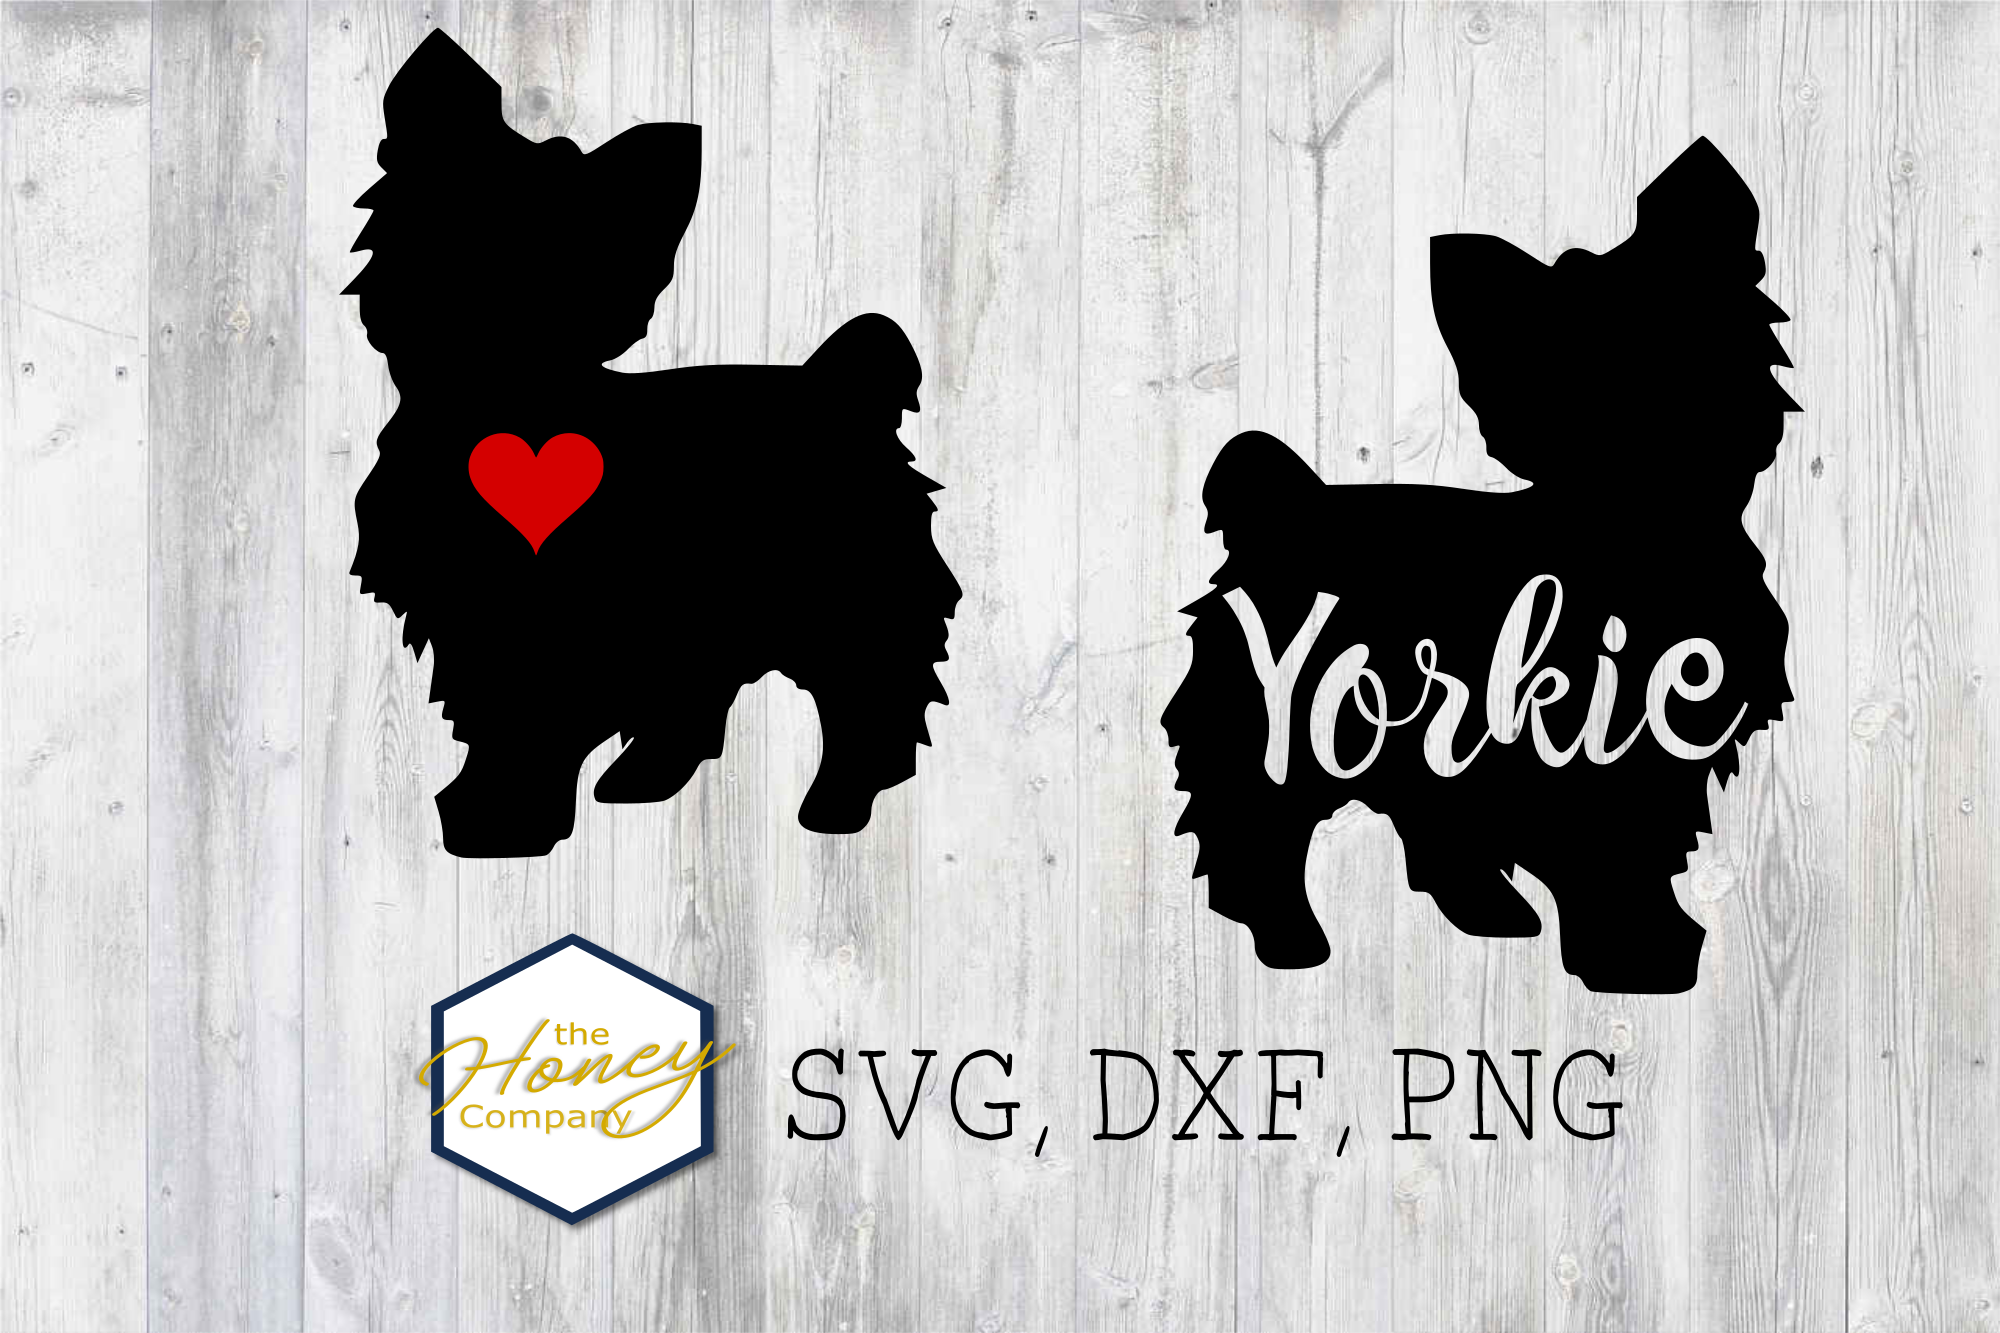 Yorkie SVG PNG DXF Terrier Dog Breed Lover Cut File Vector example image 1